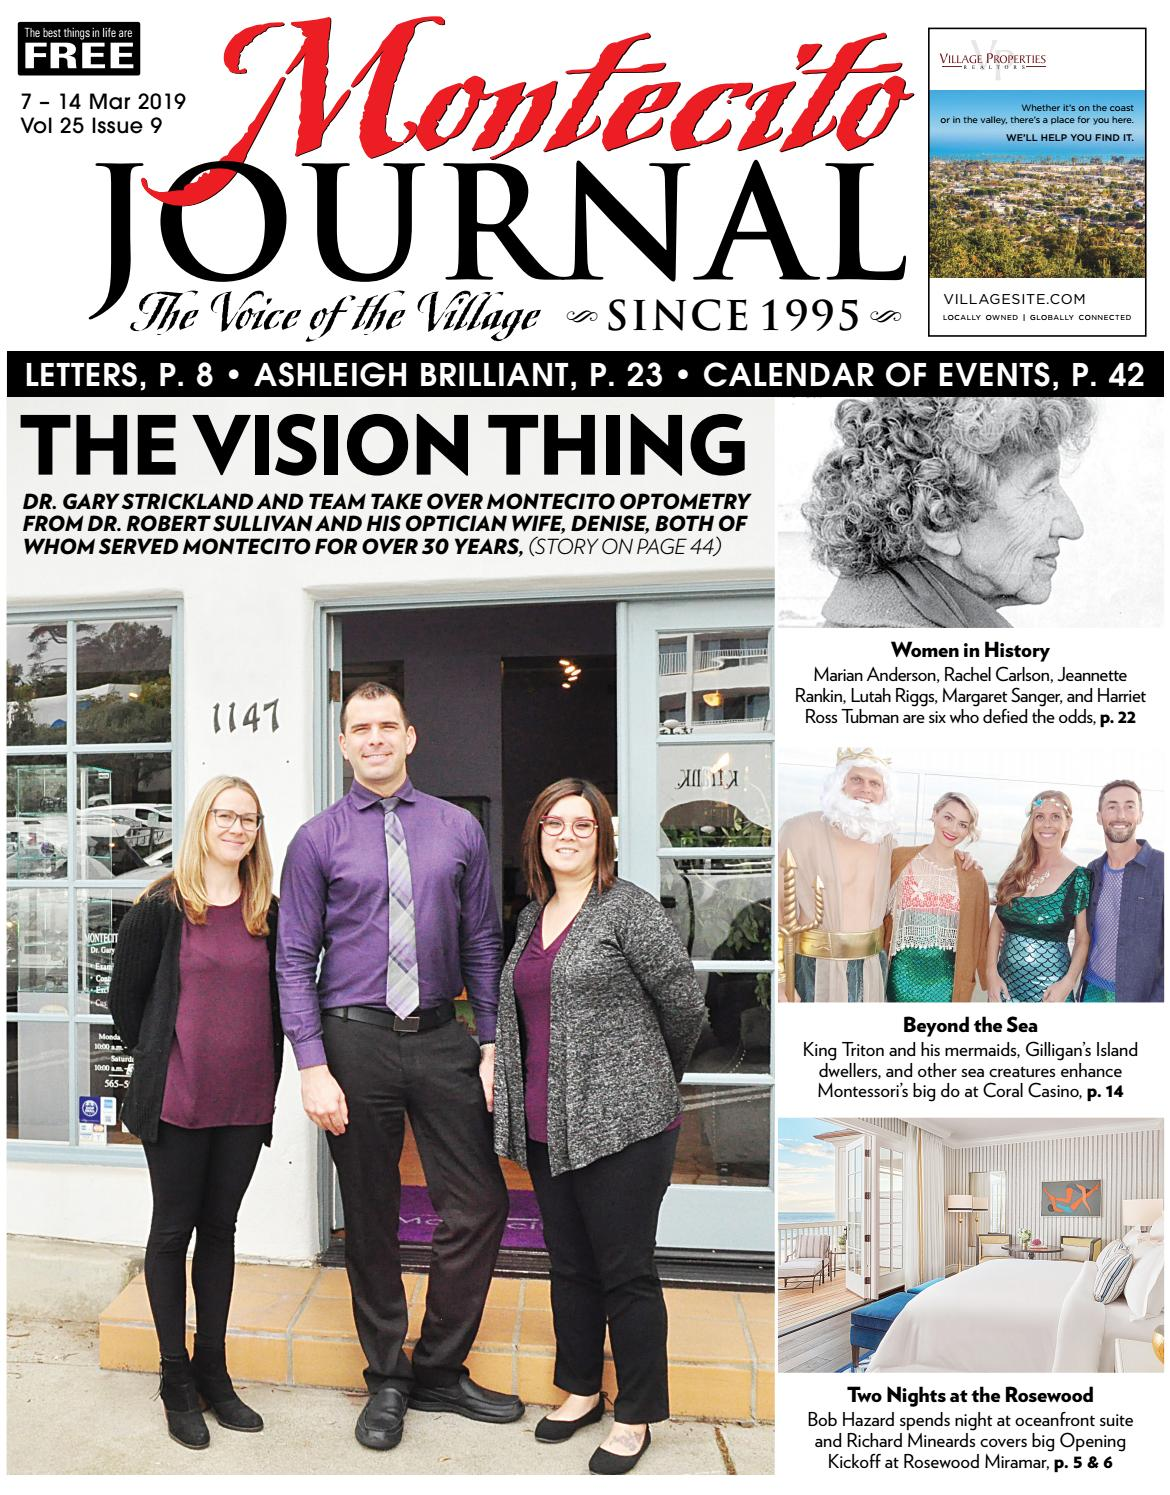 24f795126aad The Vision Thing by Montecito Journal - issuu